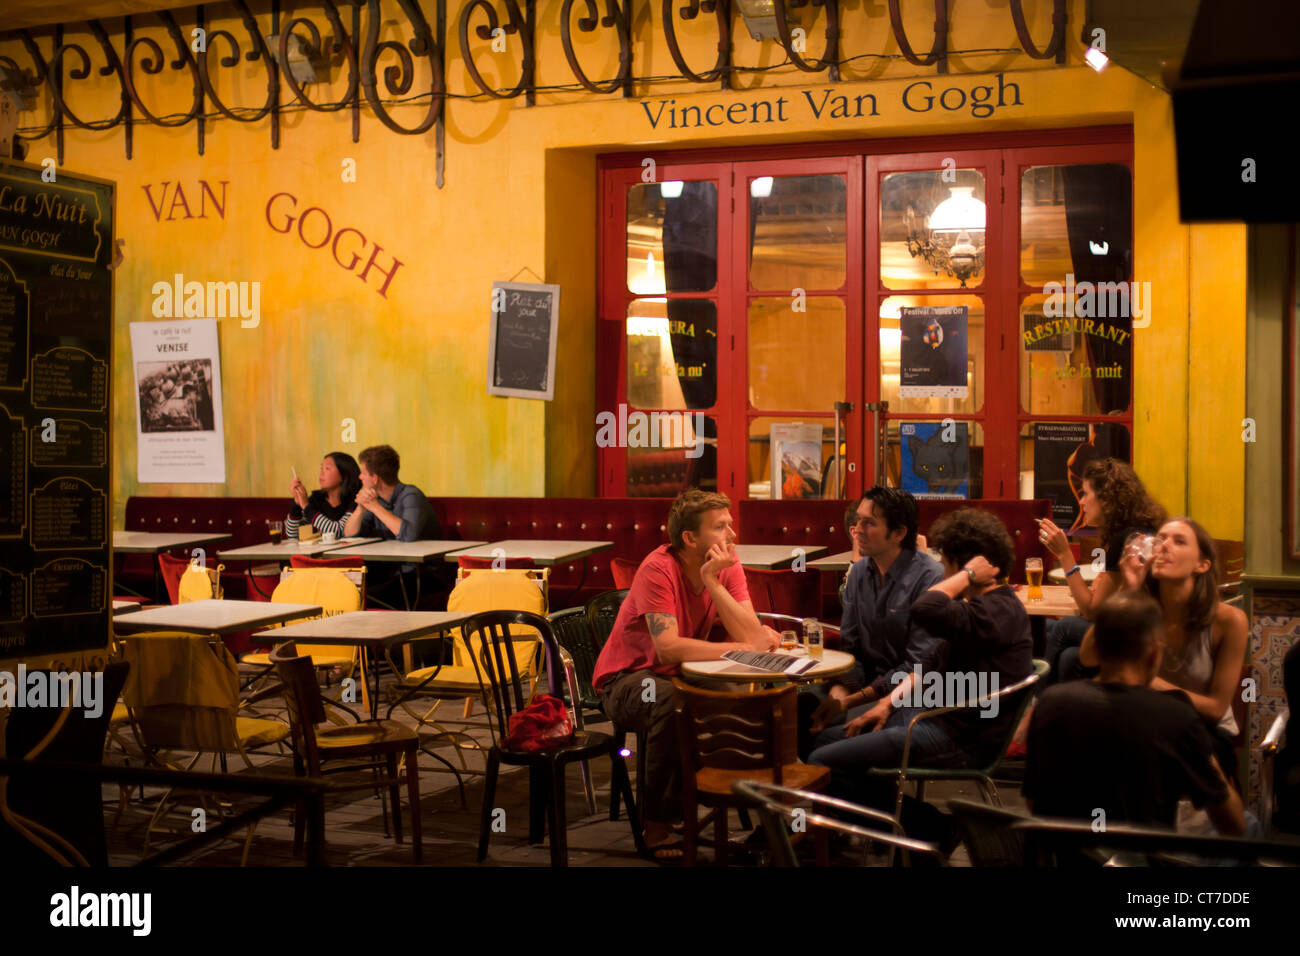 Café la Nuit, thought to be the café painted by Van Gogh in his Café Terrace at Night, at Place du - Stock Image